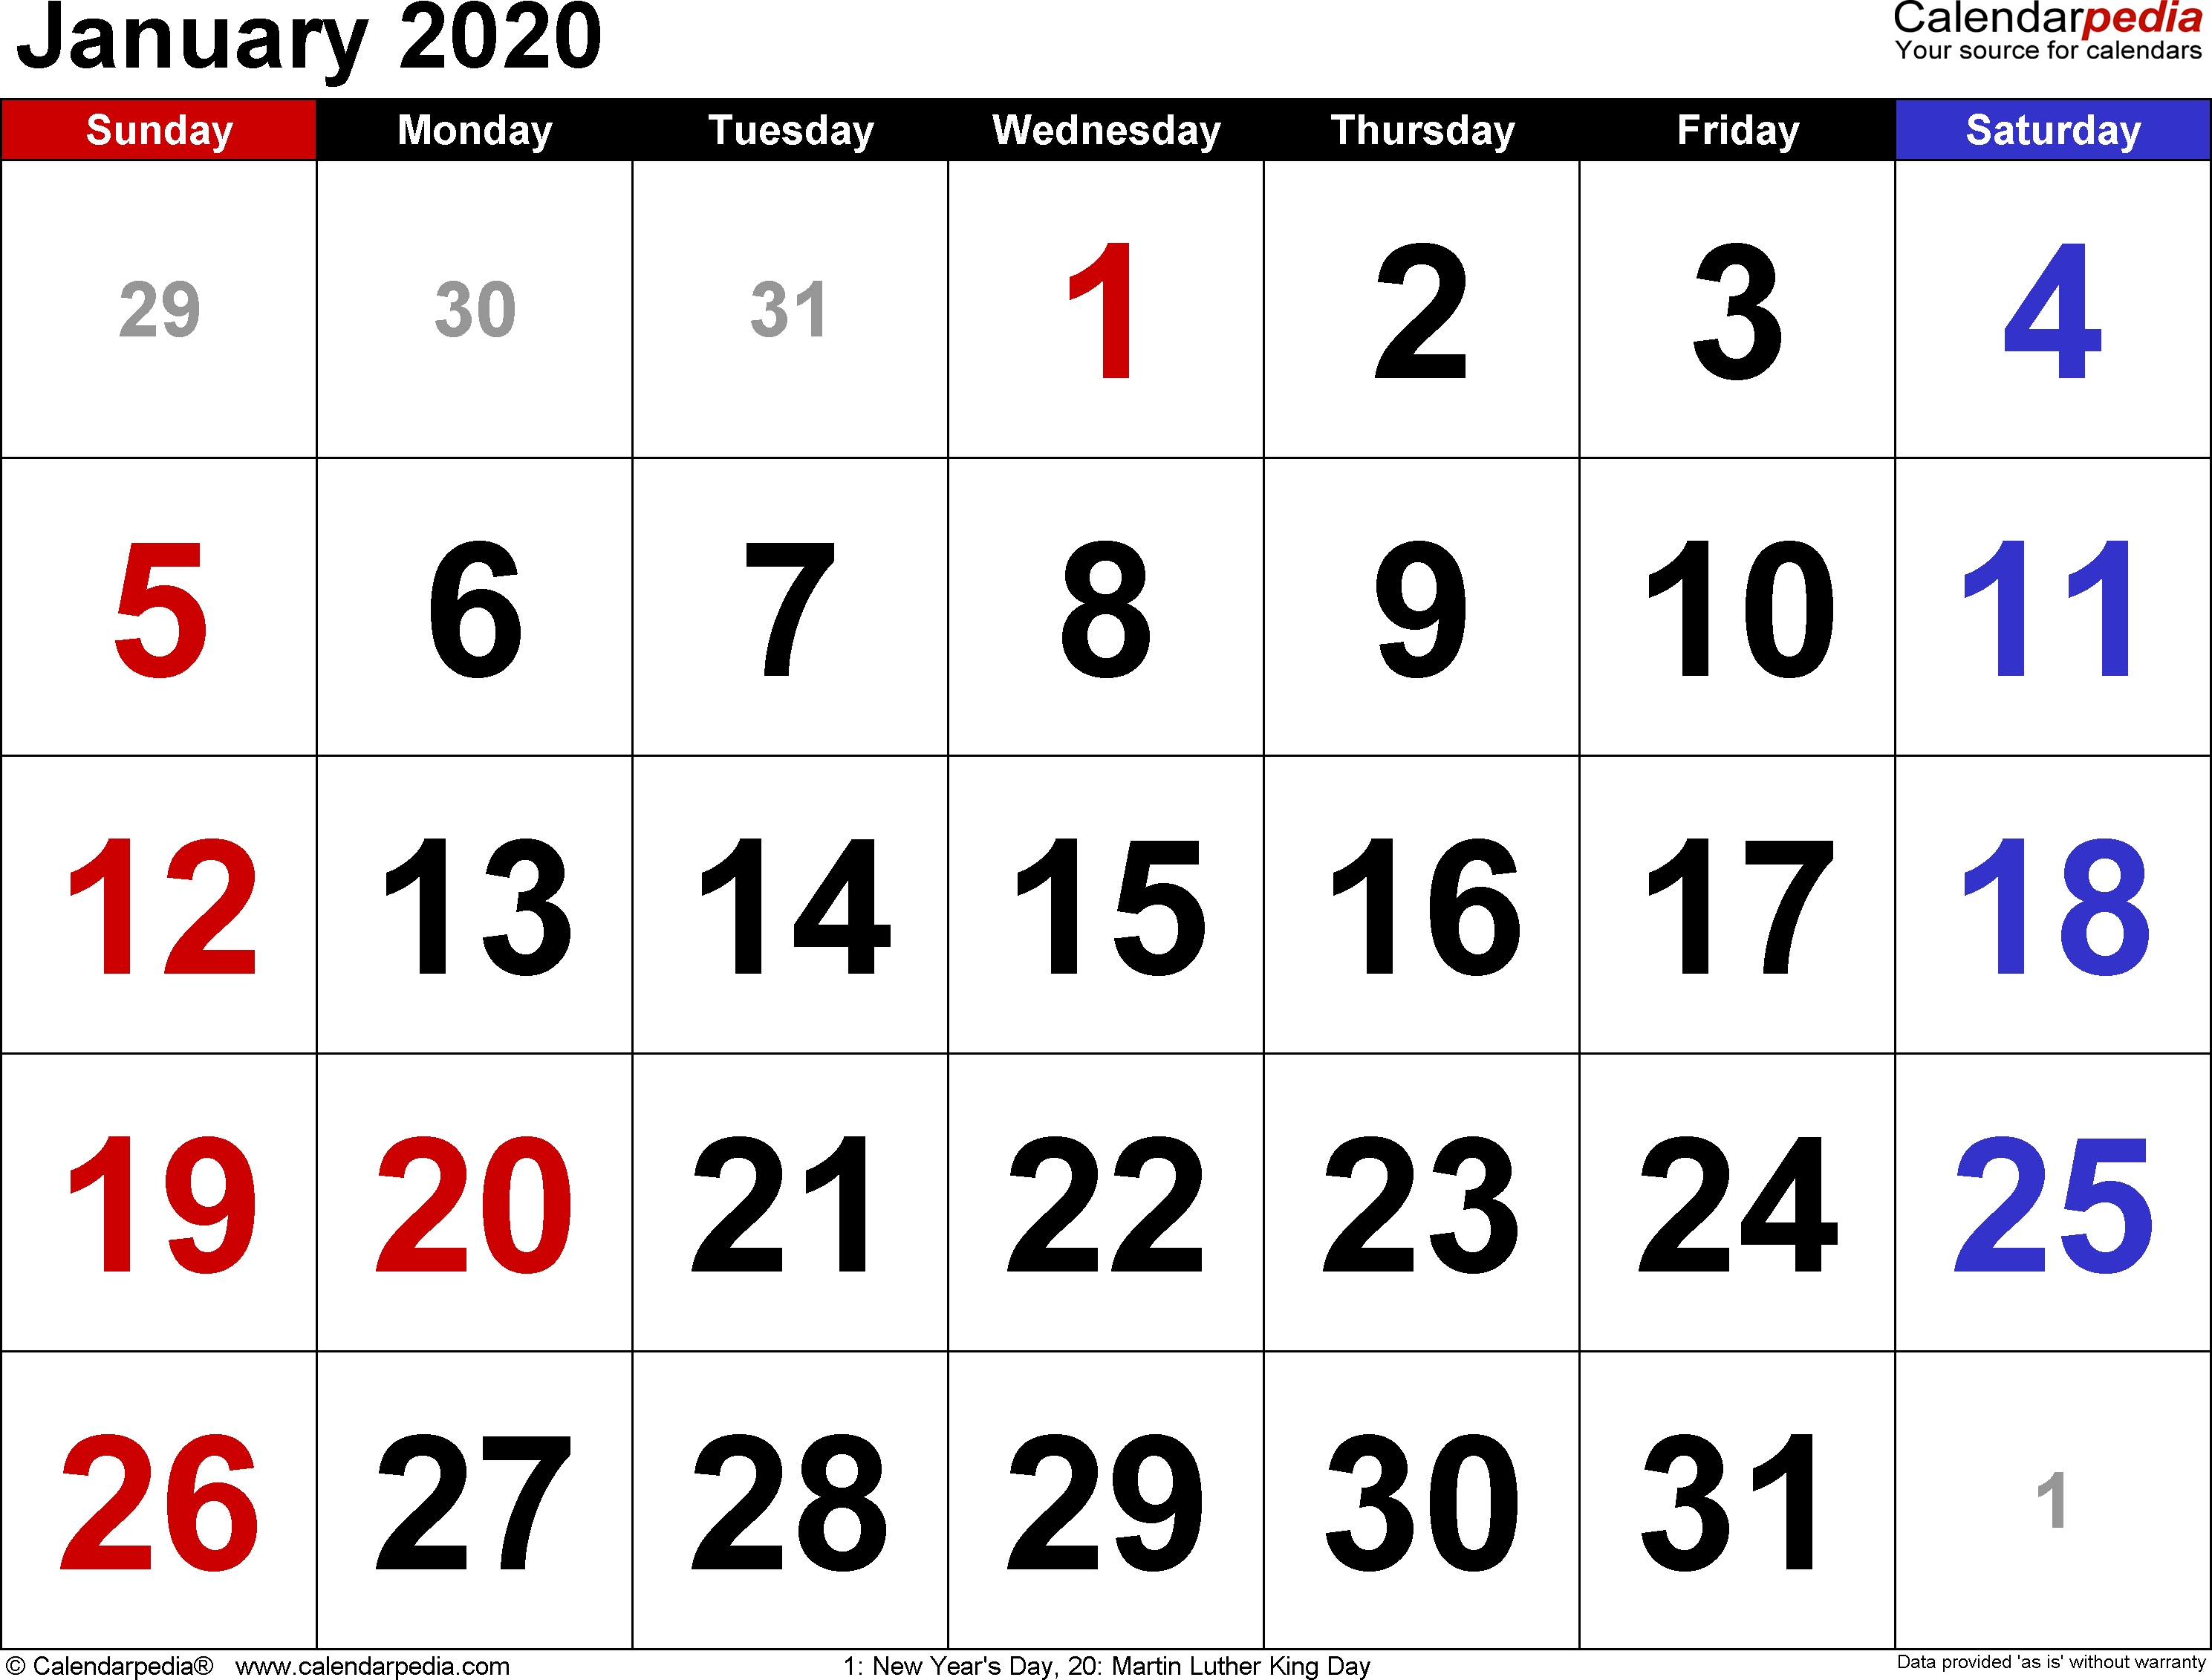 January 2020 Calendars For Word, Excel & Pdf-January 2020 Yearly Calendar